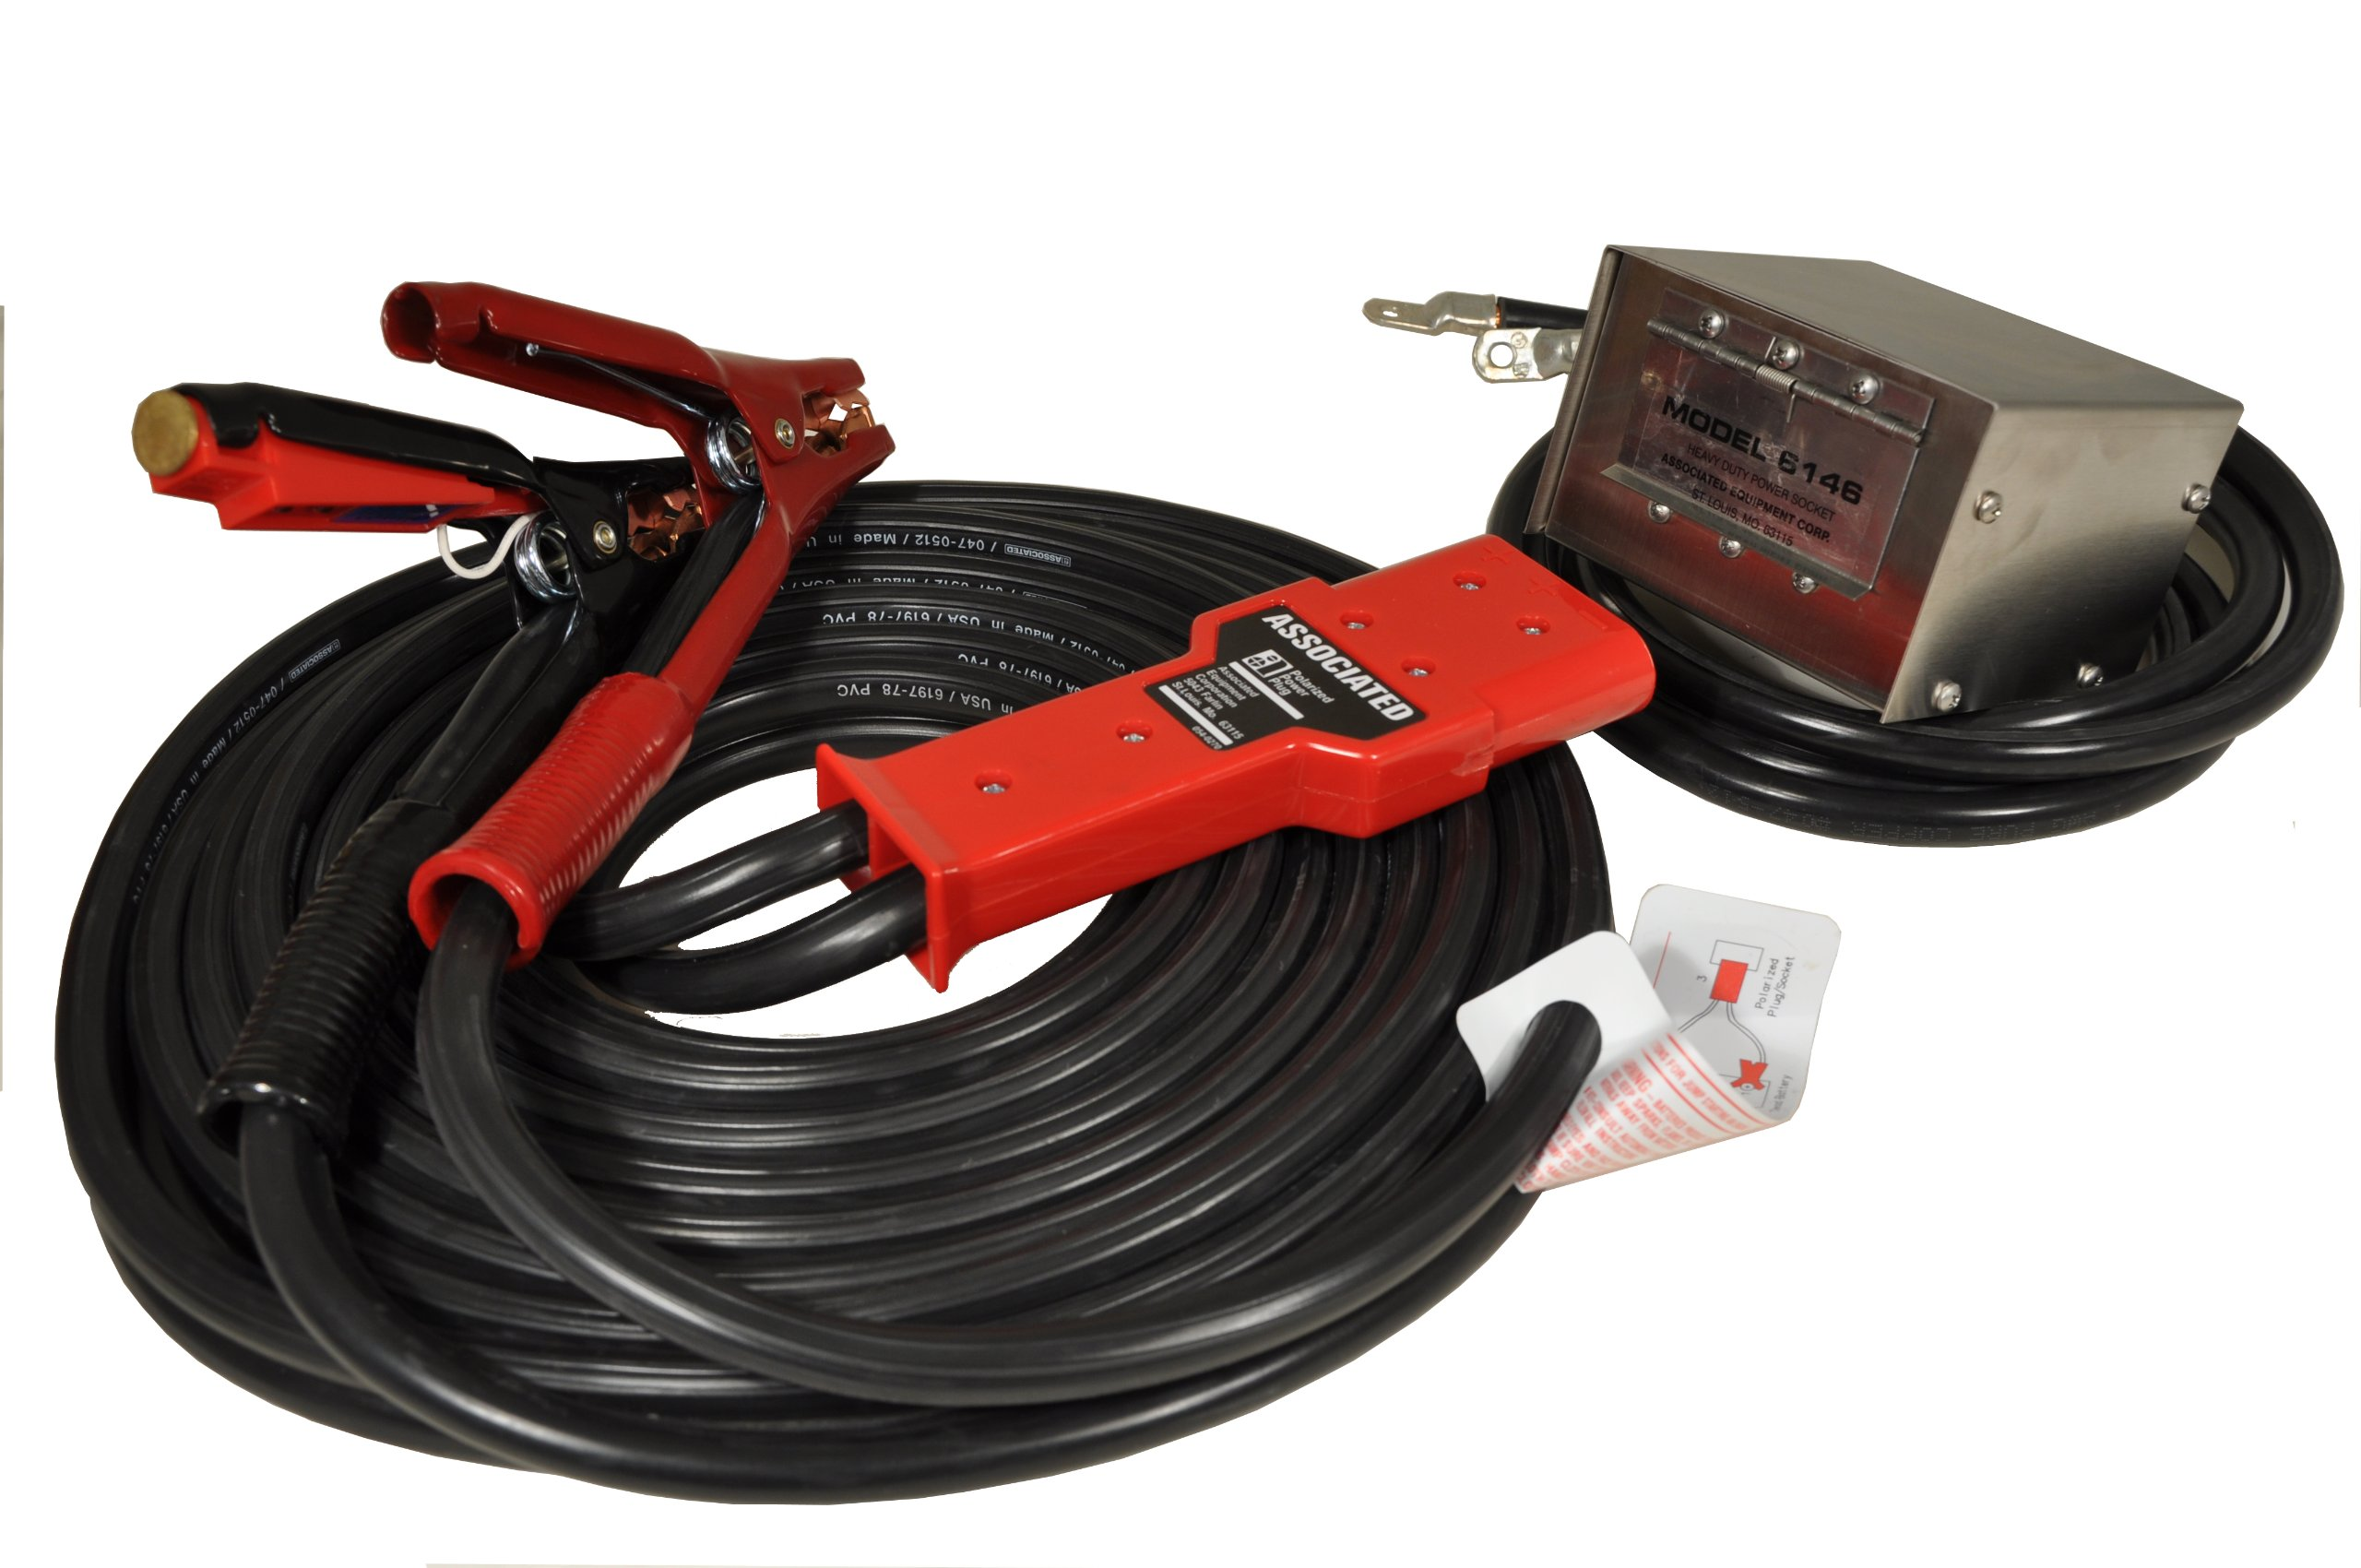 Associated Equipment 6146 30' Stainless Steel Polarized Heavy Duty Plug-in Cable Set with Socket Box by Associated Equipment